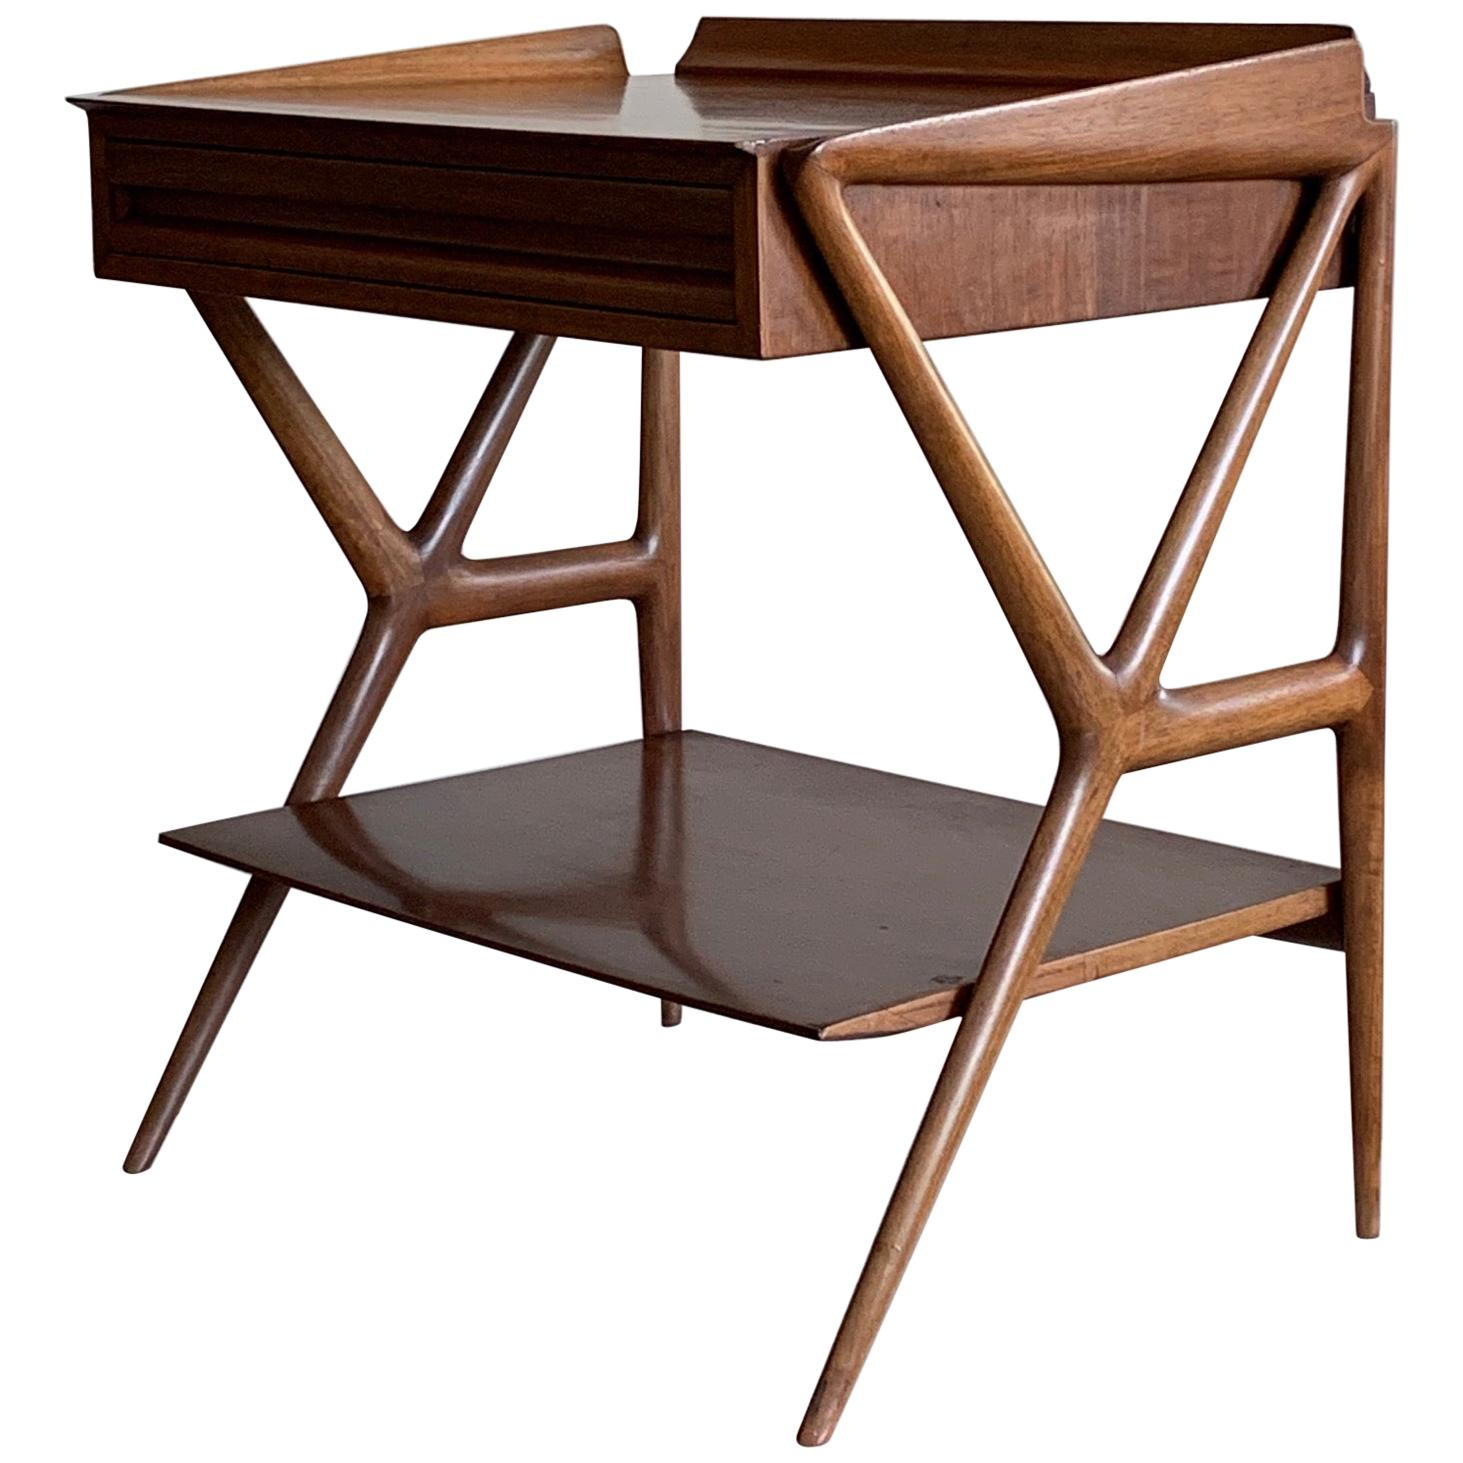 Ico Parisi Table Two-Tier Table